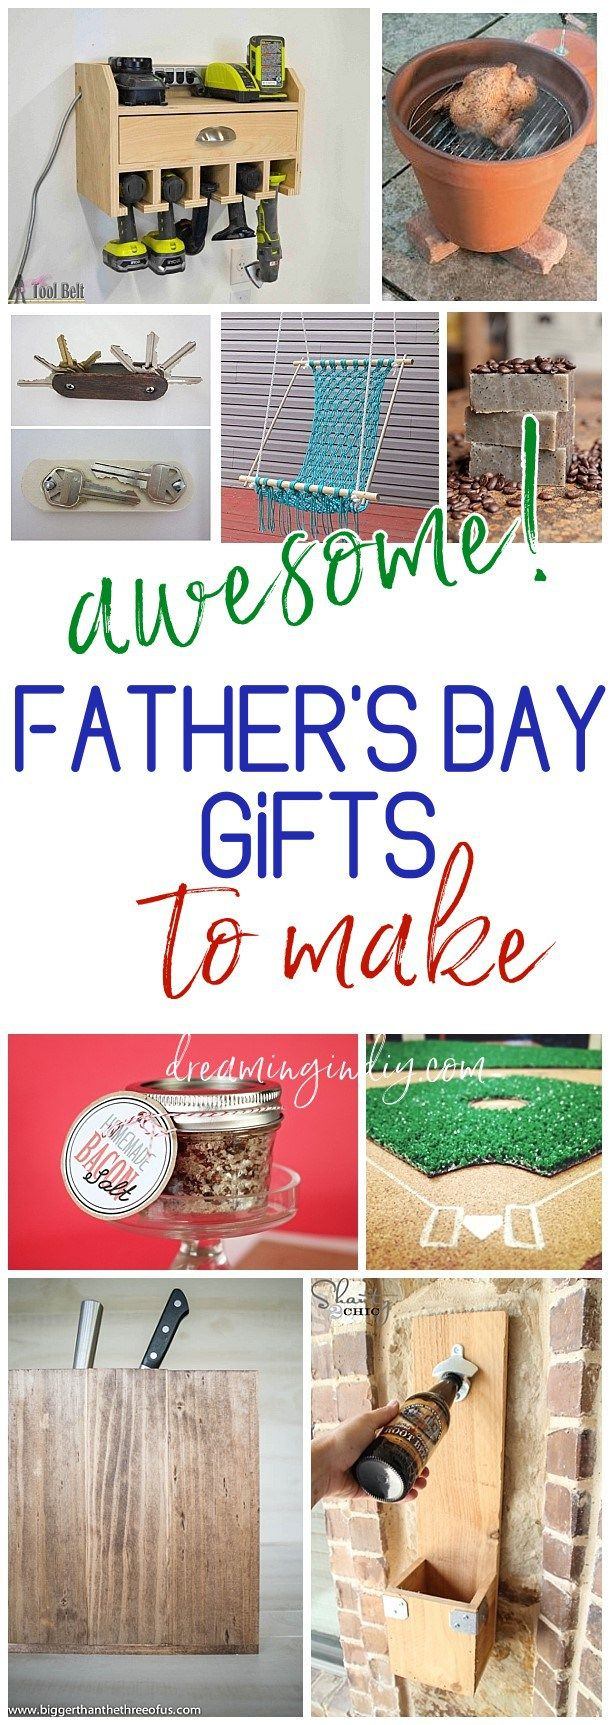 A do it yourself fathers day diy gift projects recipes and ideas a do it yourself fathers day diy gift projects recipes and ideas dad will love solutioingenieria Gallery